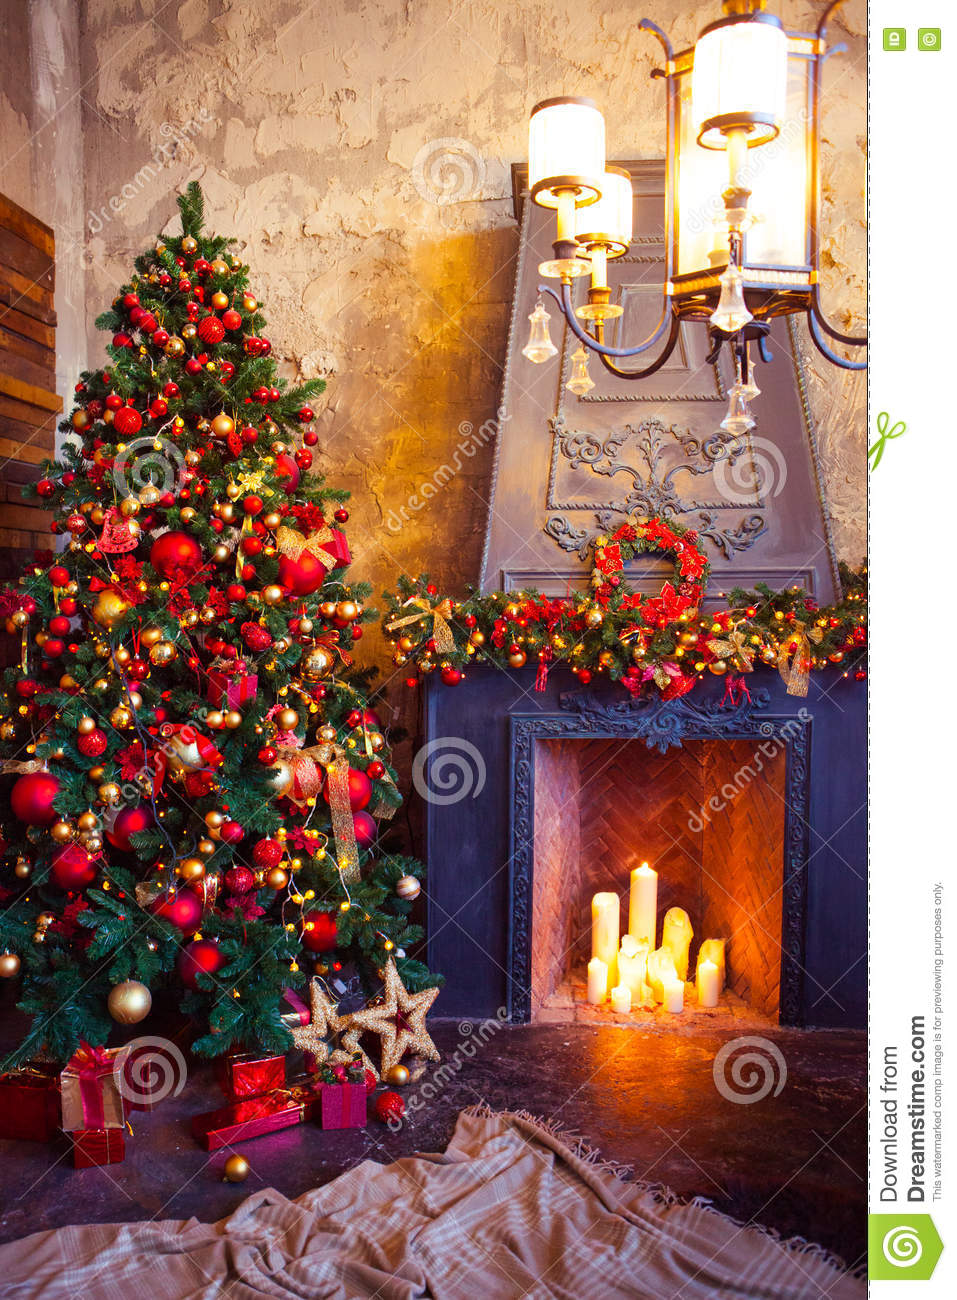 Christmas Room Interior Design Decorated Tree In Garland Lights Royalty Free Stock Photography